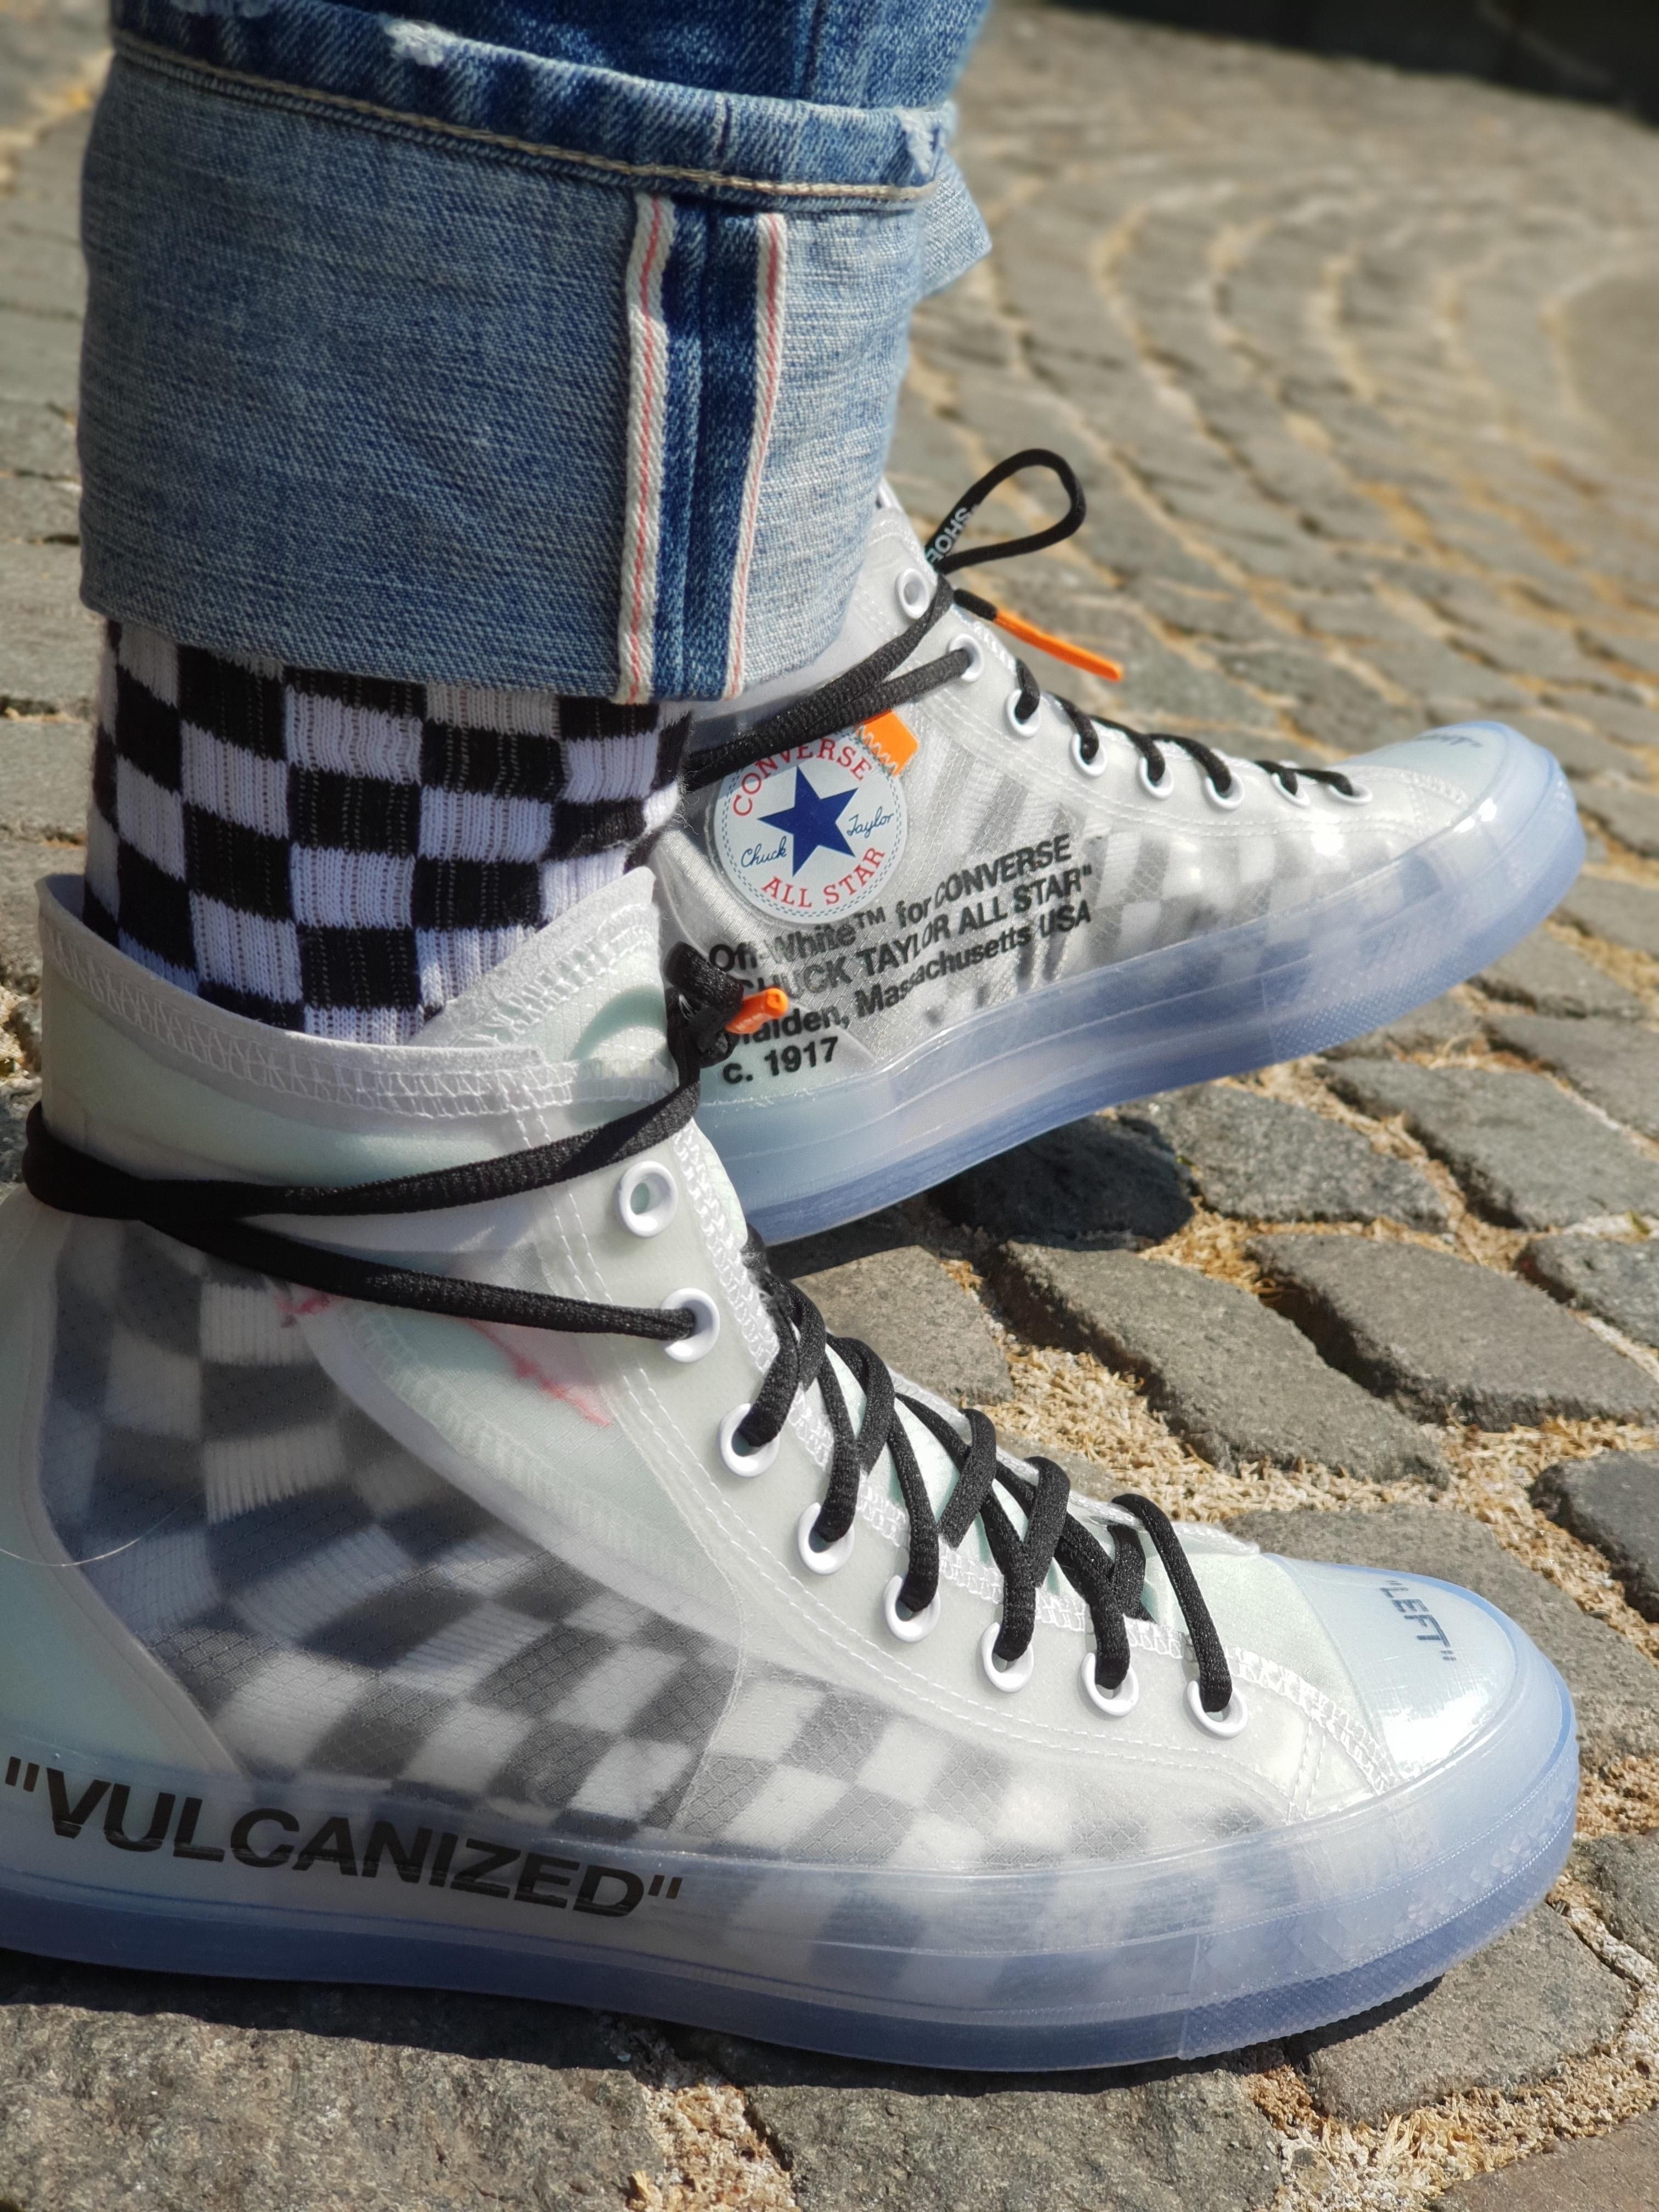 Socks Matter Converse X Off White Hype Shoes Sneakers Fashion Cute Shoes